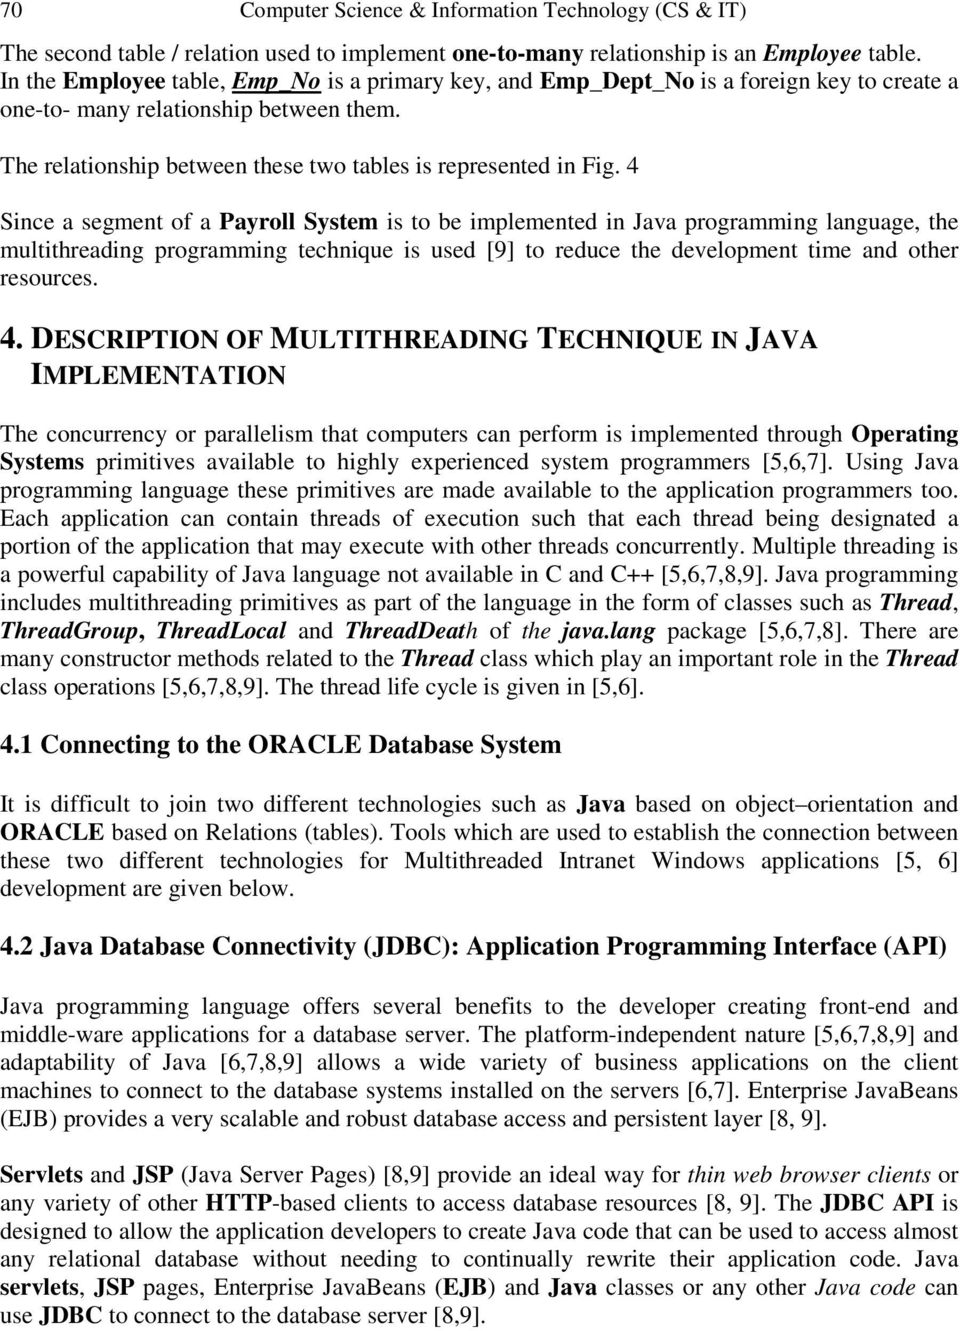 4 Since a segment of a Payroll System is to be implemented in Java programming language, the multithreading programming technique is used [9] to reduce the development time and other resources. 4.